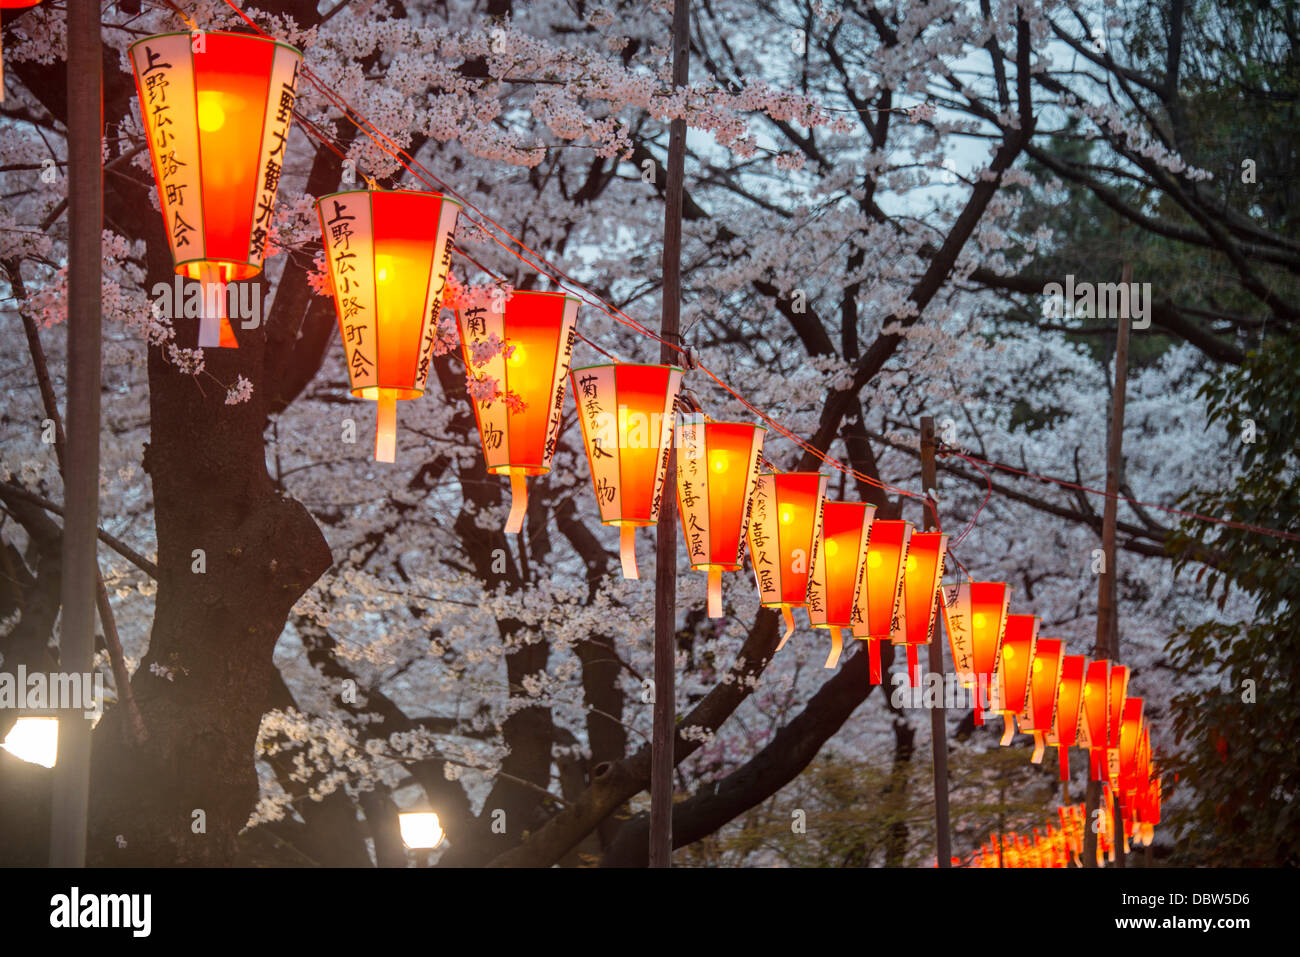 Red lanterns illuminating the cherry blossom in the Ueno Park, Tokyo, Japan, Asia - Stock Image